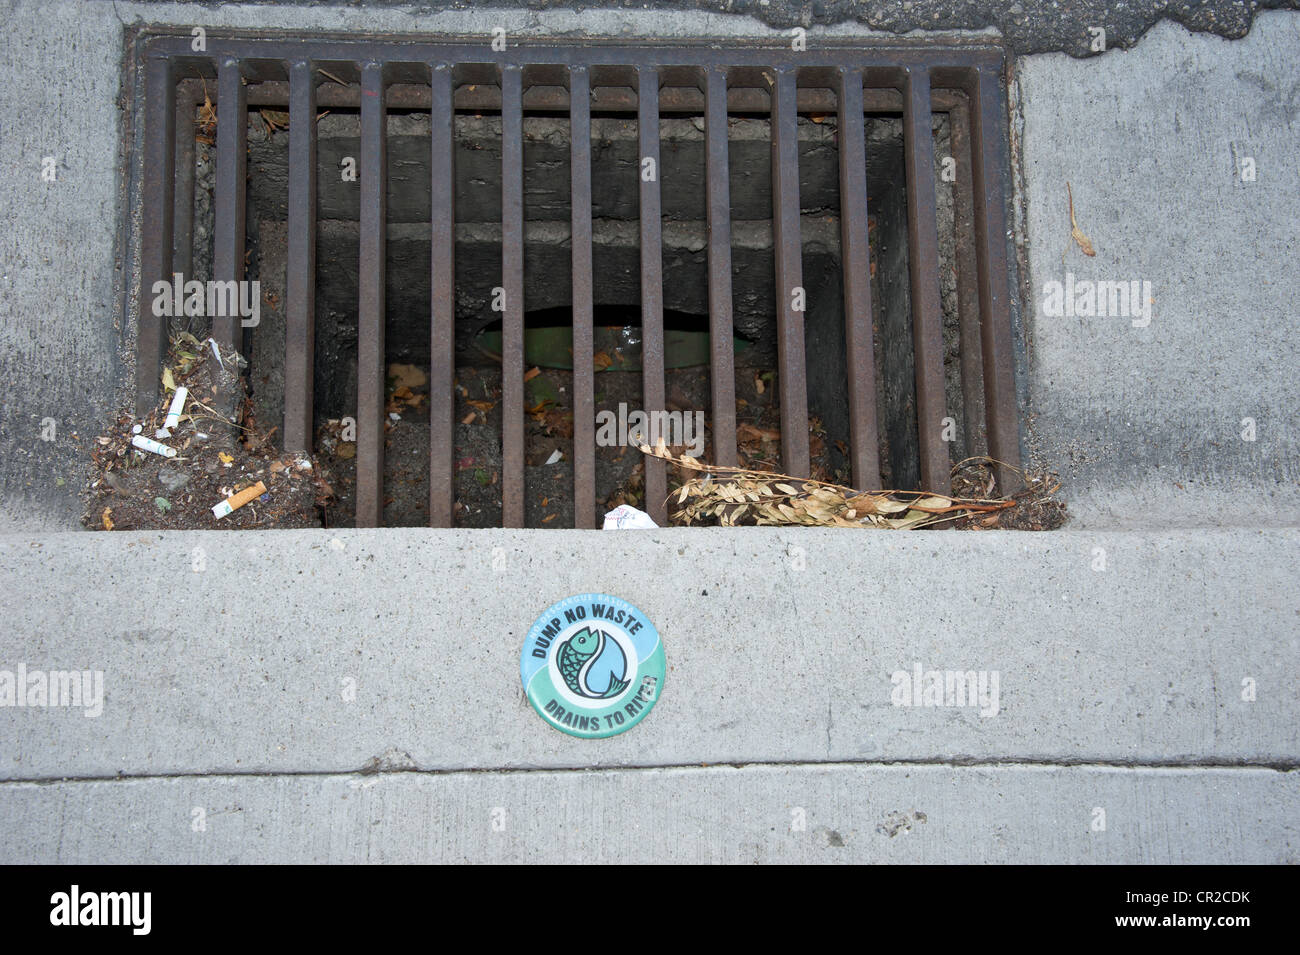 Storm drain in Boise, Idaho with a warning sign that informs people the water going down this drain goes directly - Stock Image